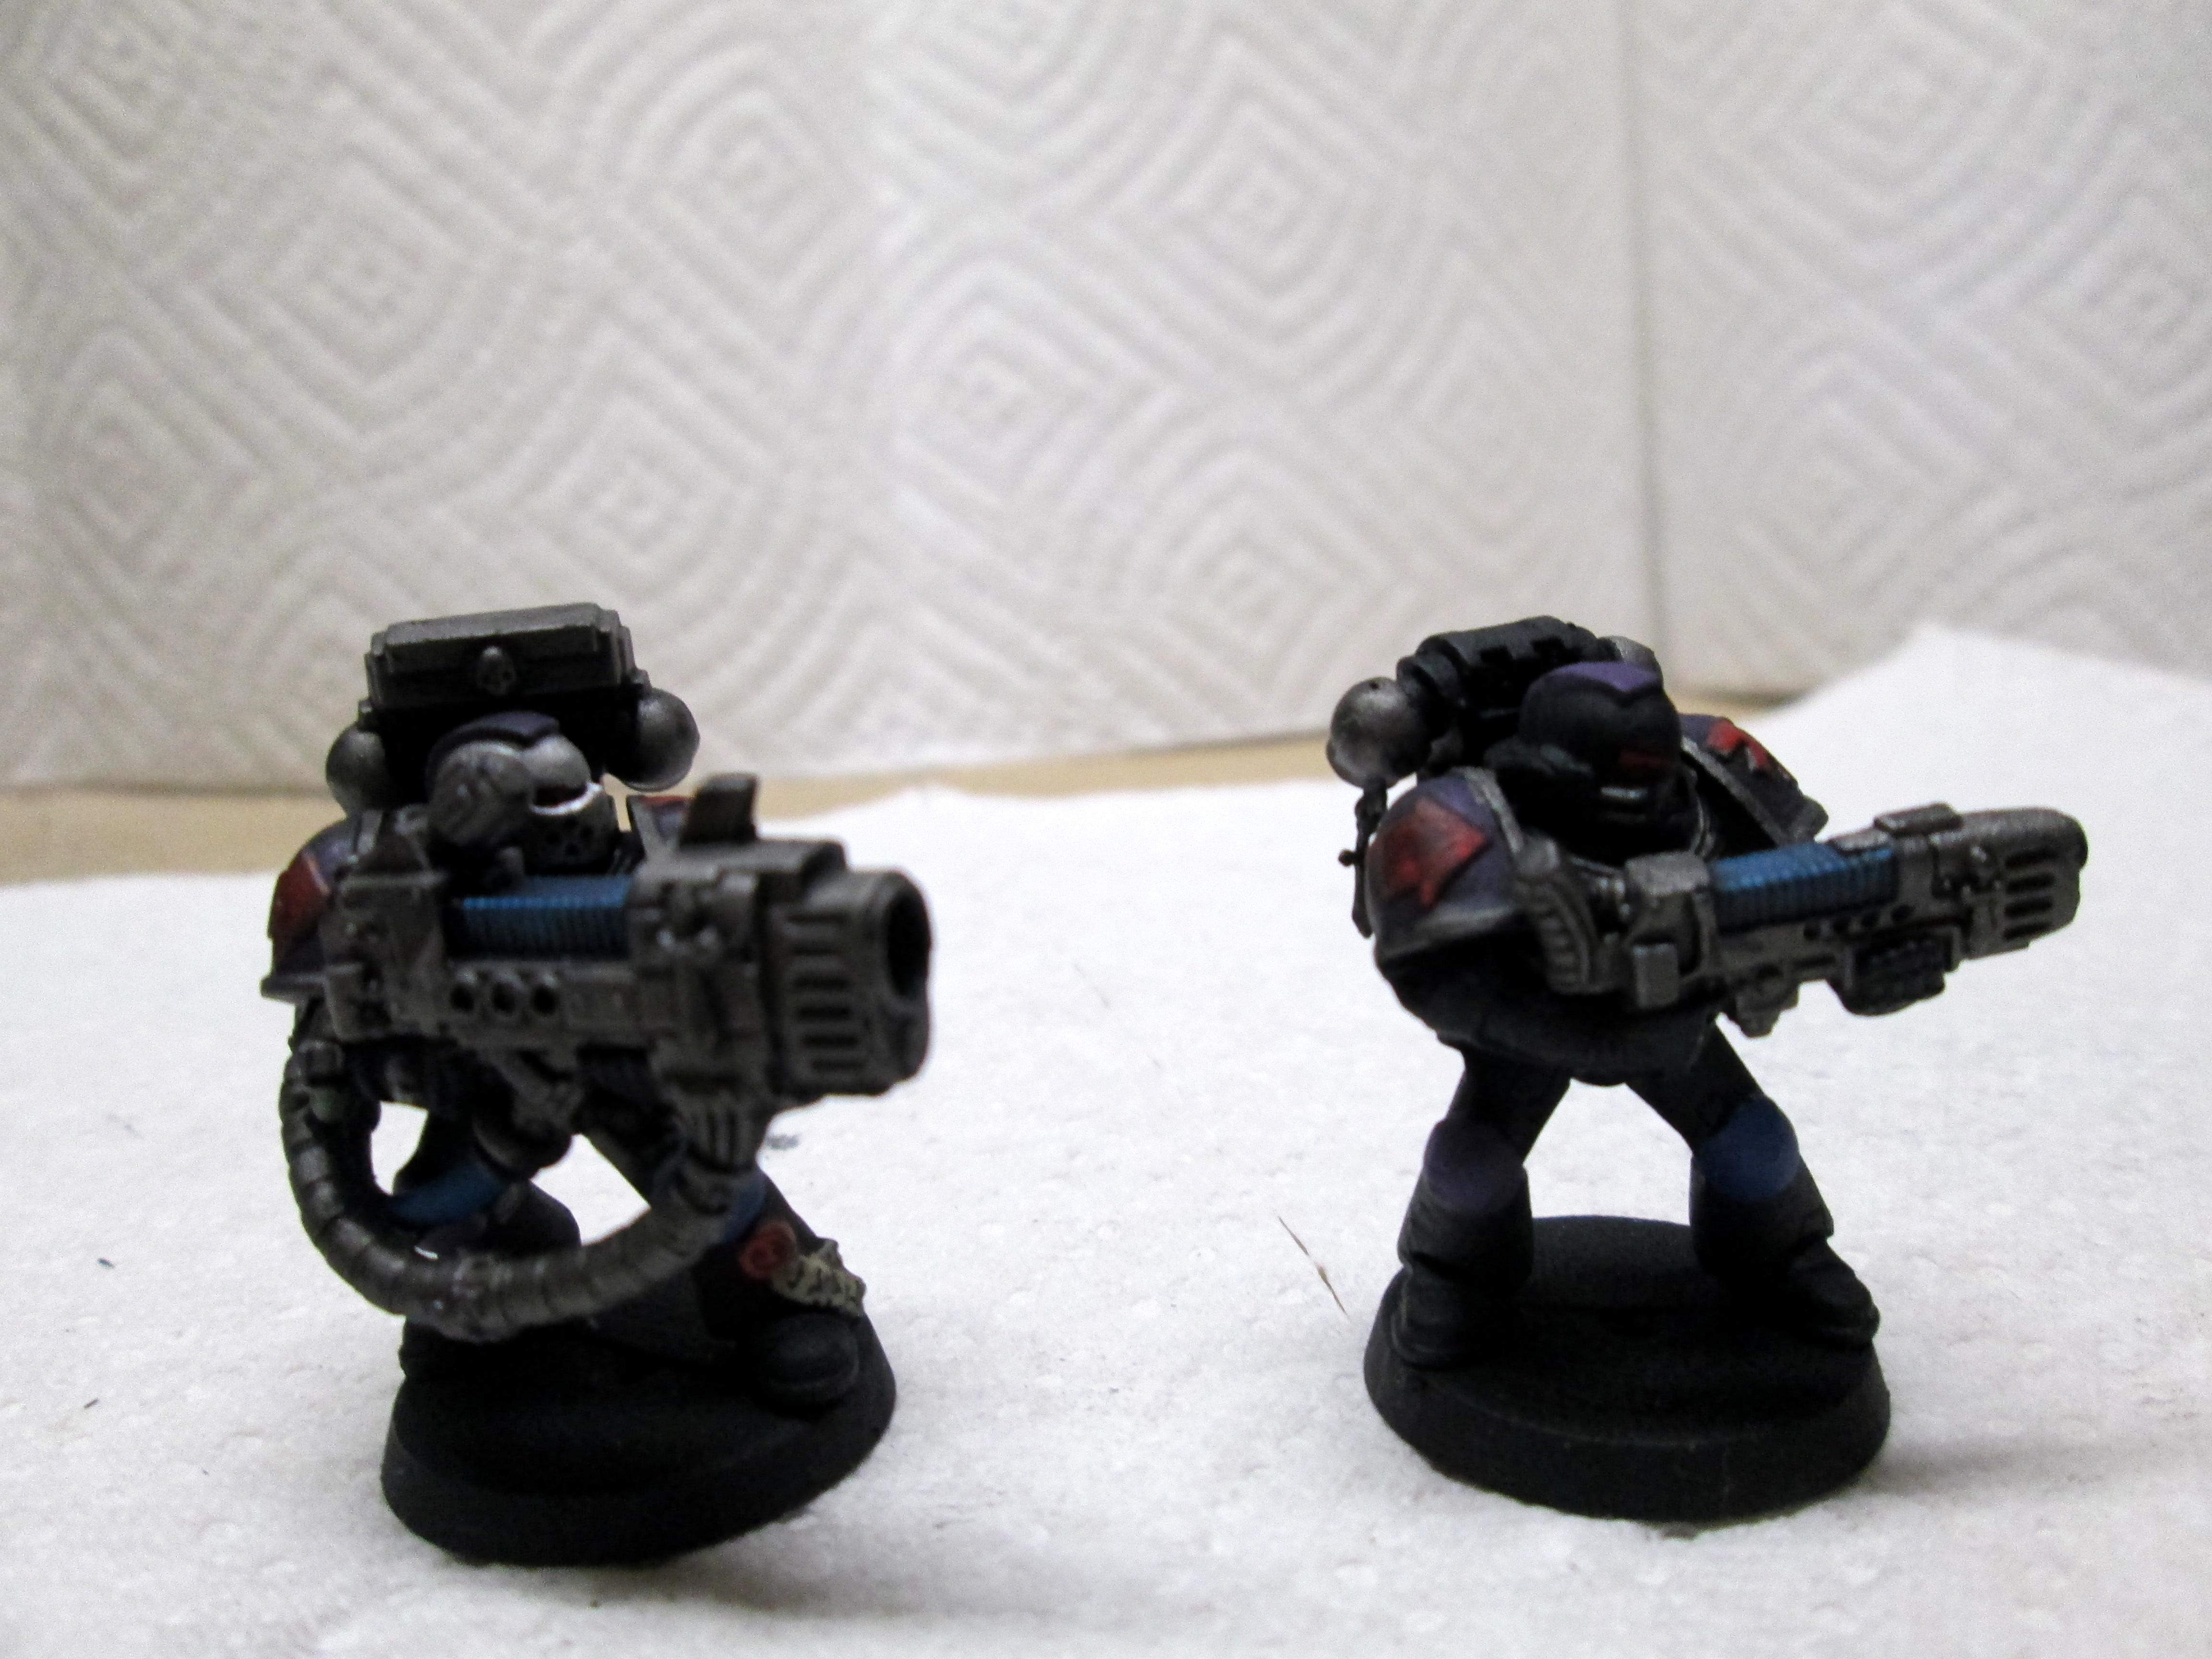 Critique, Custom, Dark Angels, Finished, Minis, Painted, Plasma, Plasma Cannon, Space Marines, Successor, Warhammer 40,000